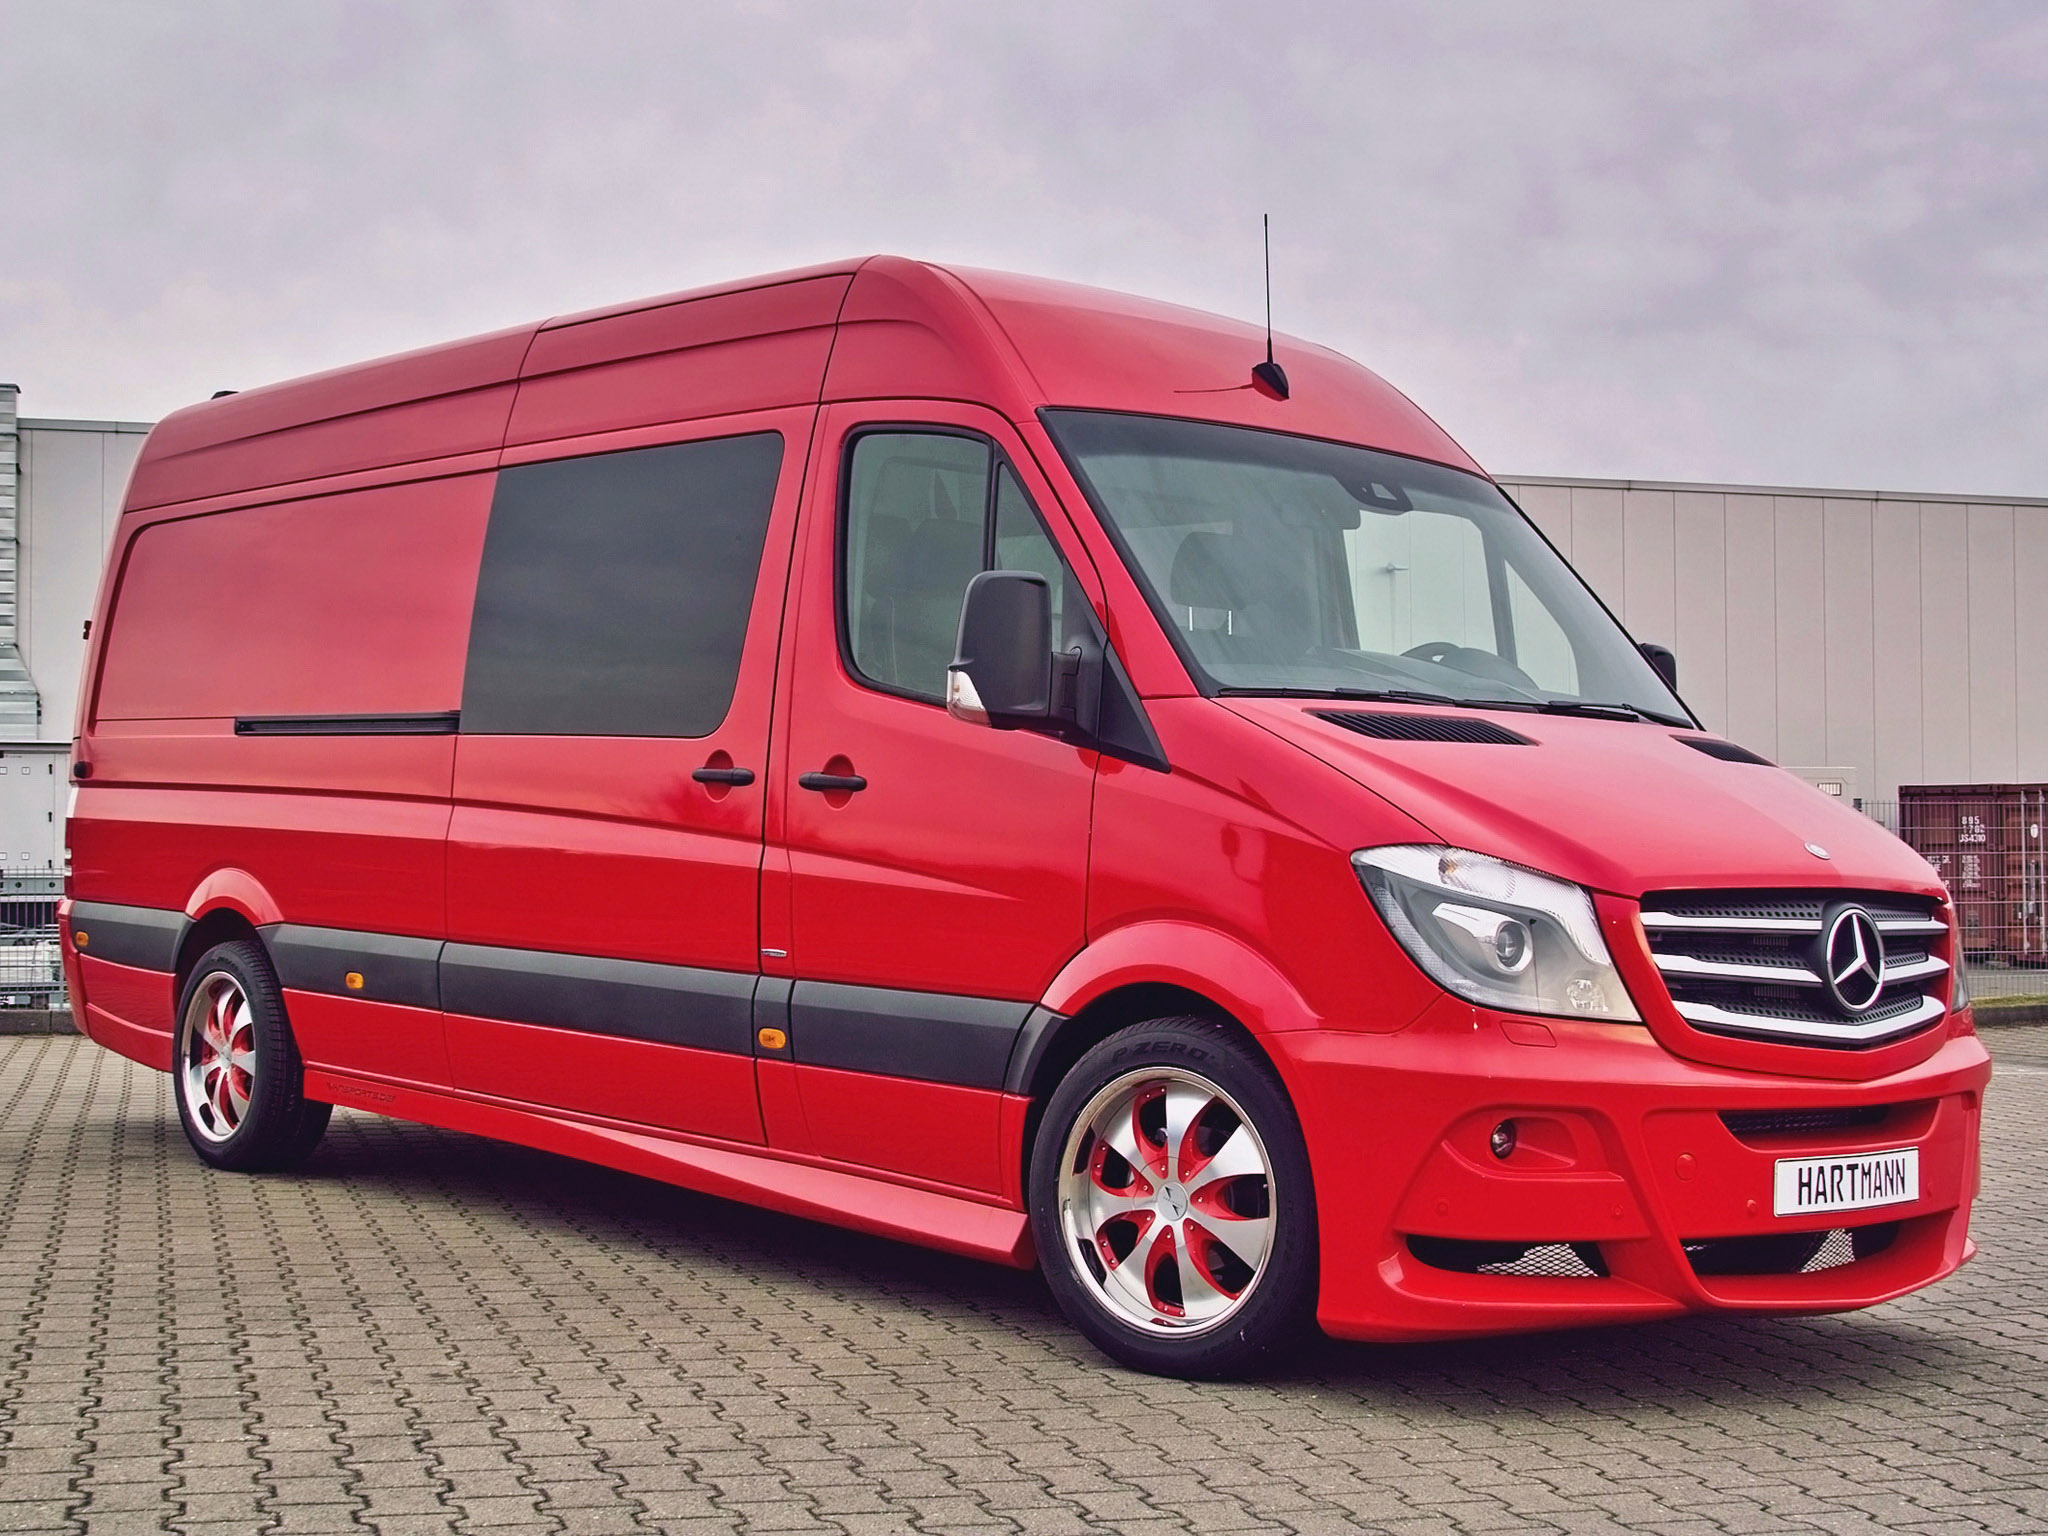 Mercedes Benz Sprinter 319 2014 Technical Specifications Interior And Exterior Photo